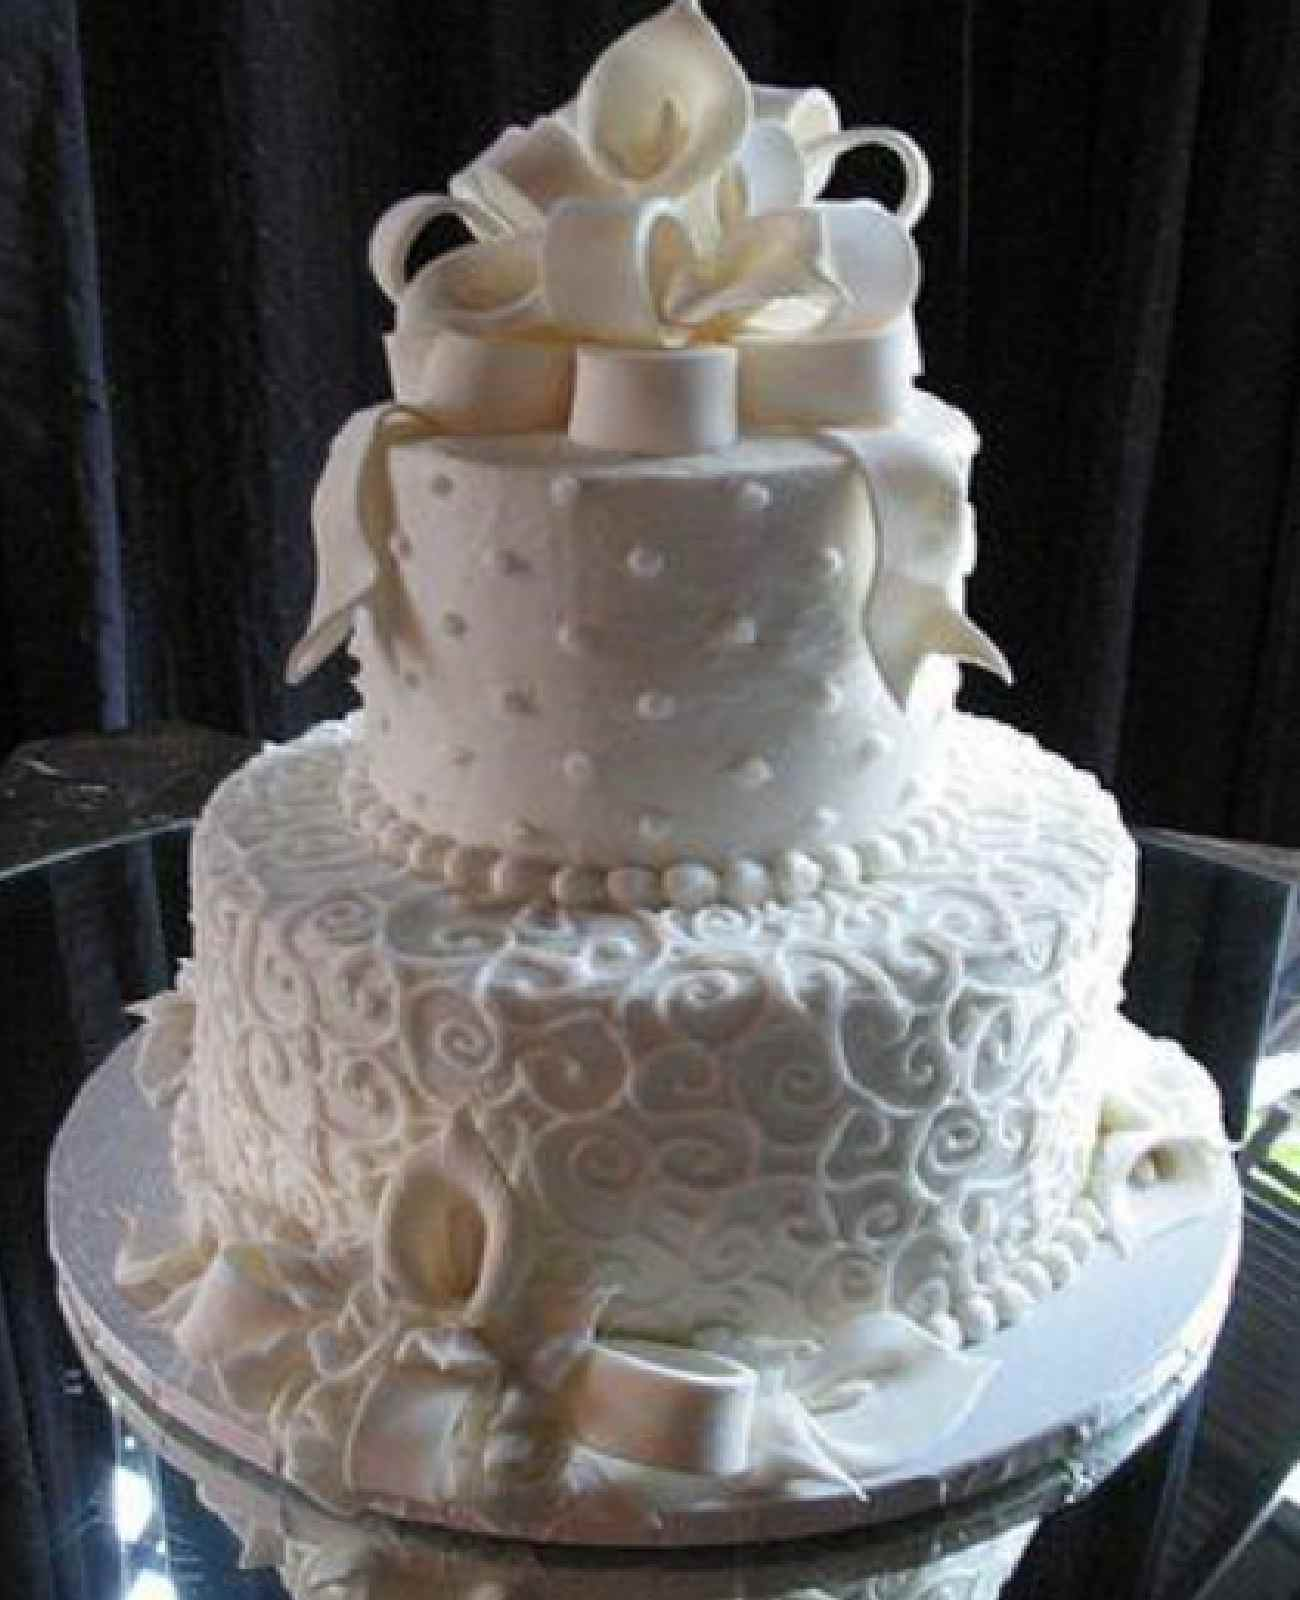 Beautiful Wedding Cakes Should Represent the Bride and Groom